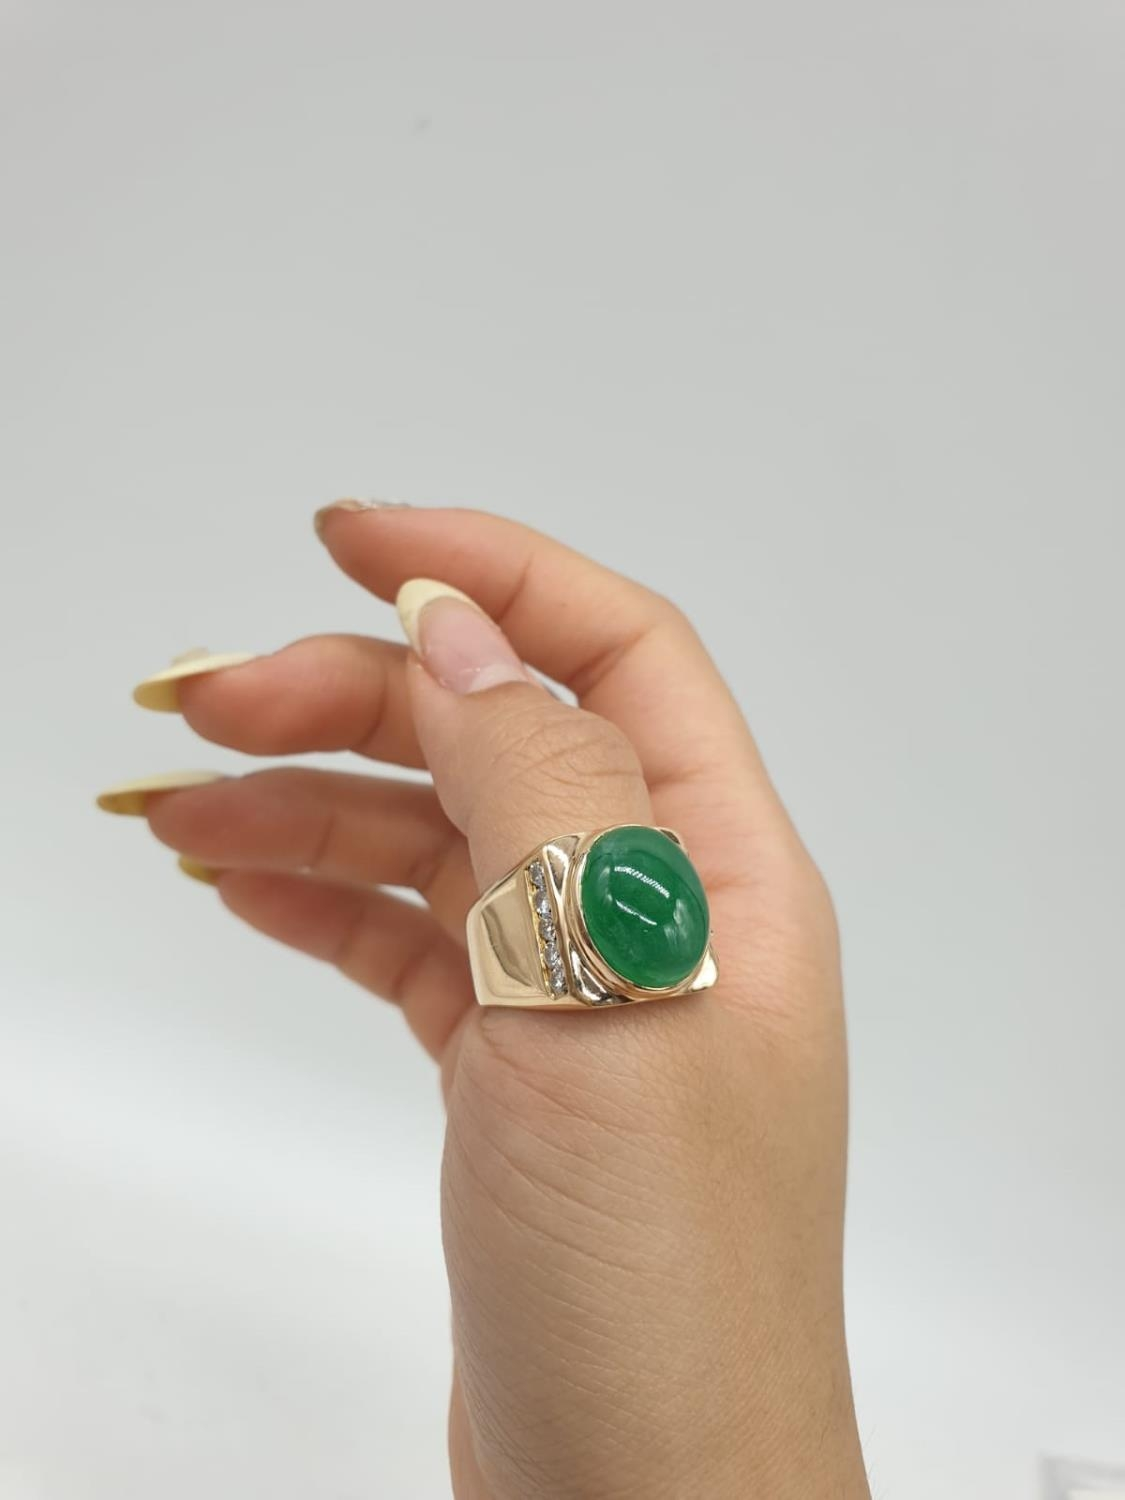 18ct Gold ring with natural jade stone and diamond shoulders. 16.2g total weight and size R. - Image 8 of 8